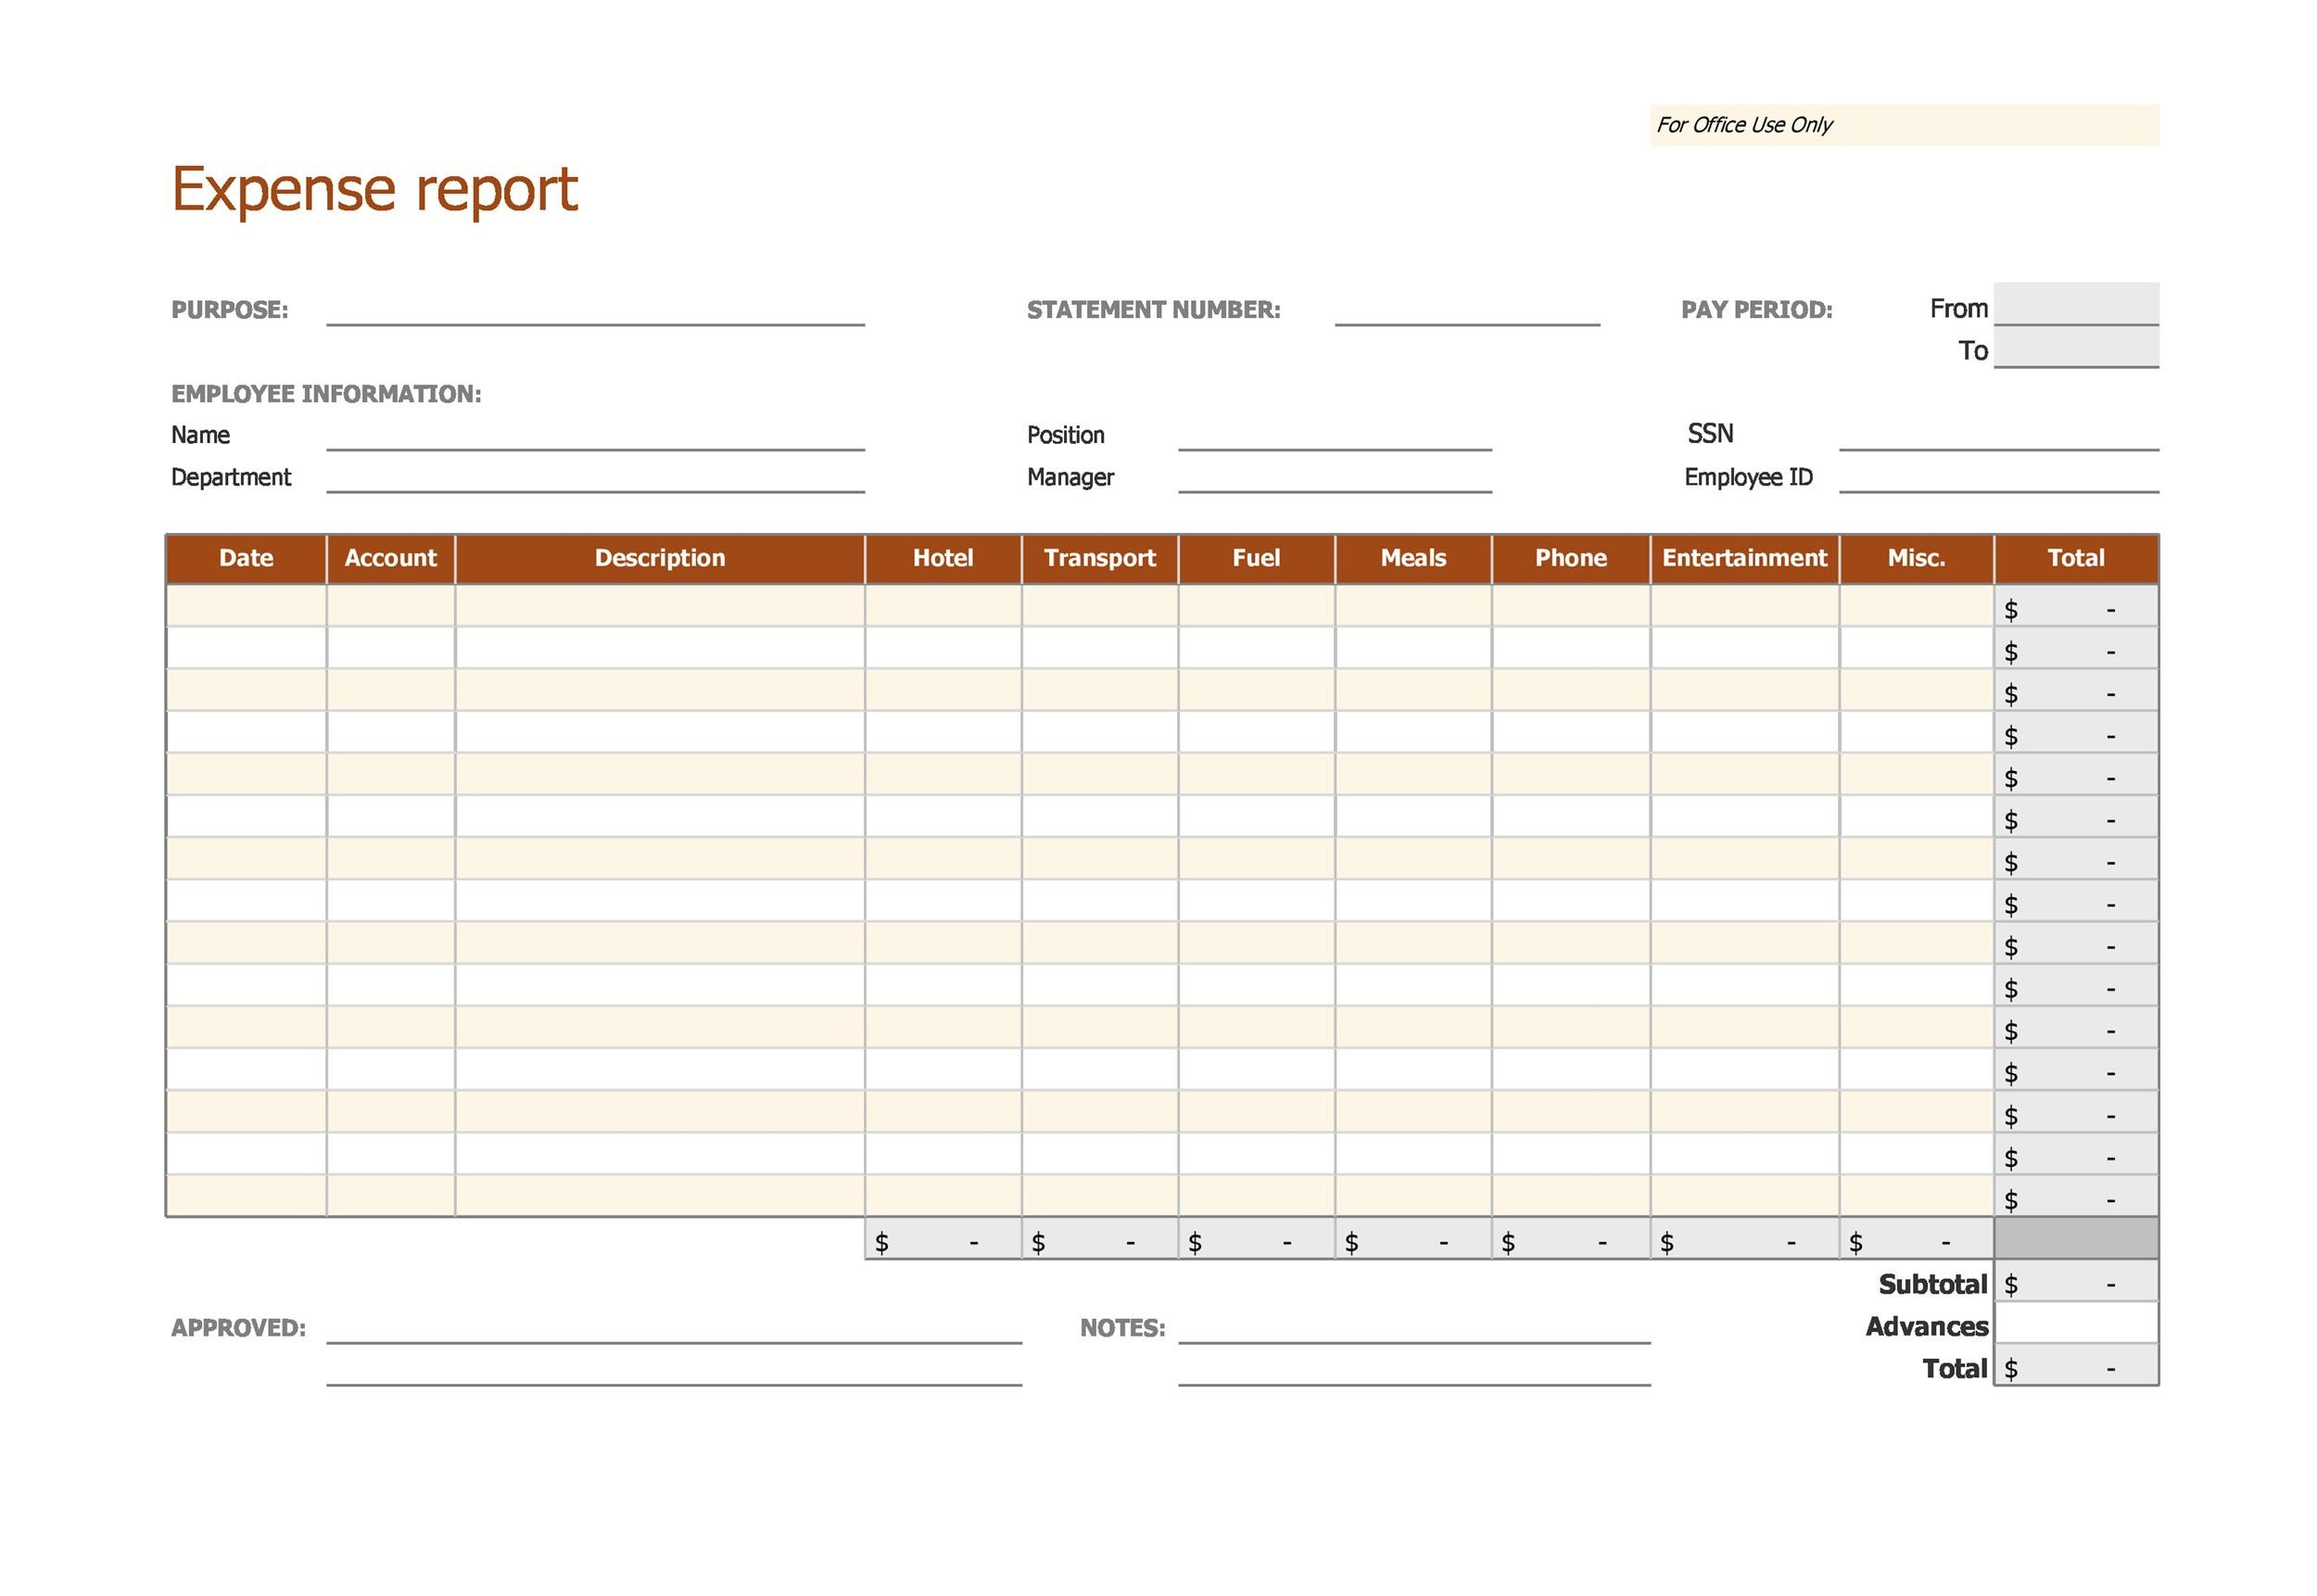 40+ Expense Report Templates to Help you Save Money - Template Lab - generic expense report